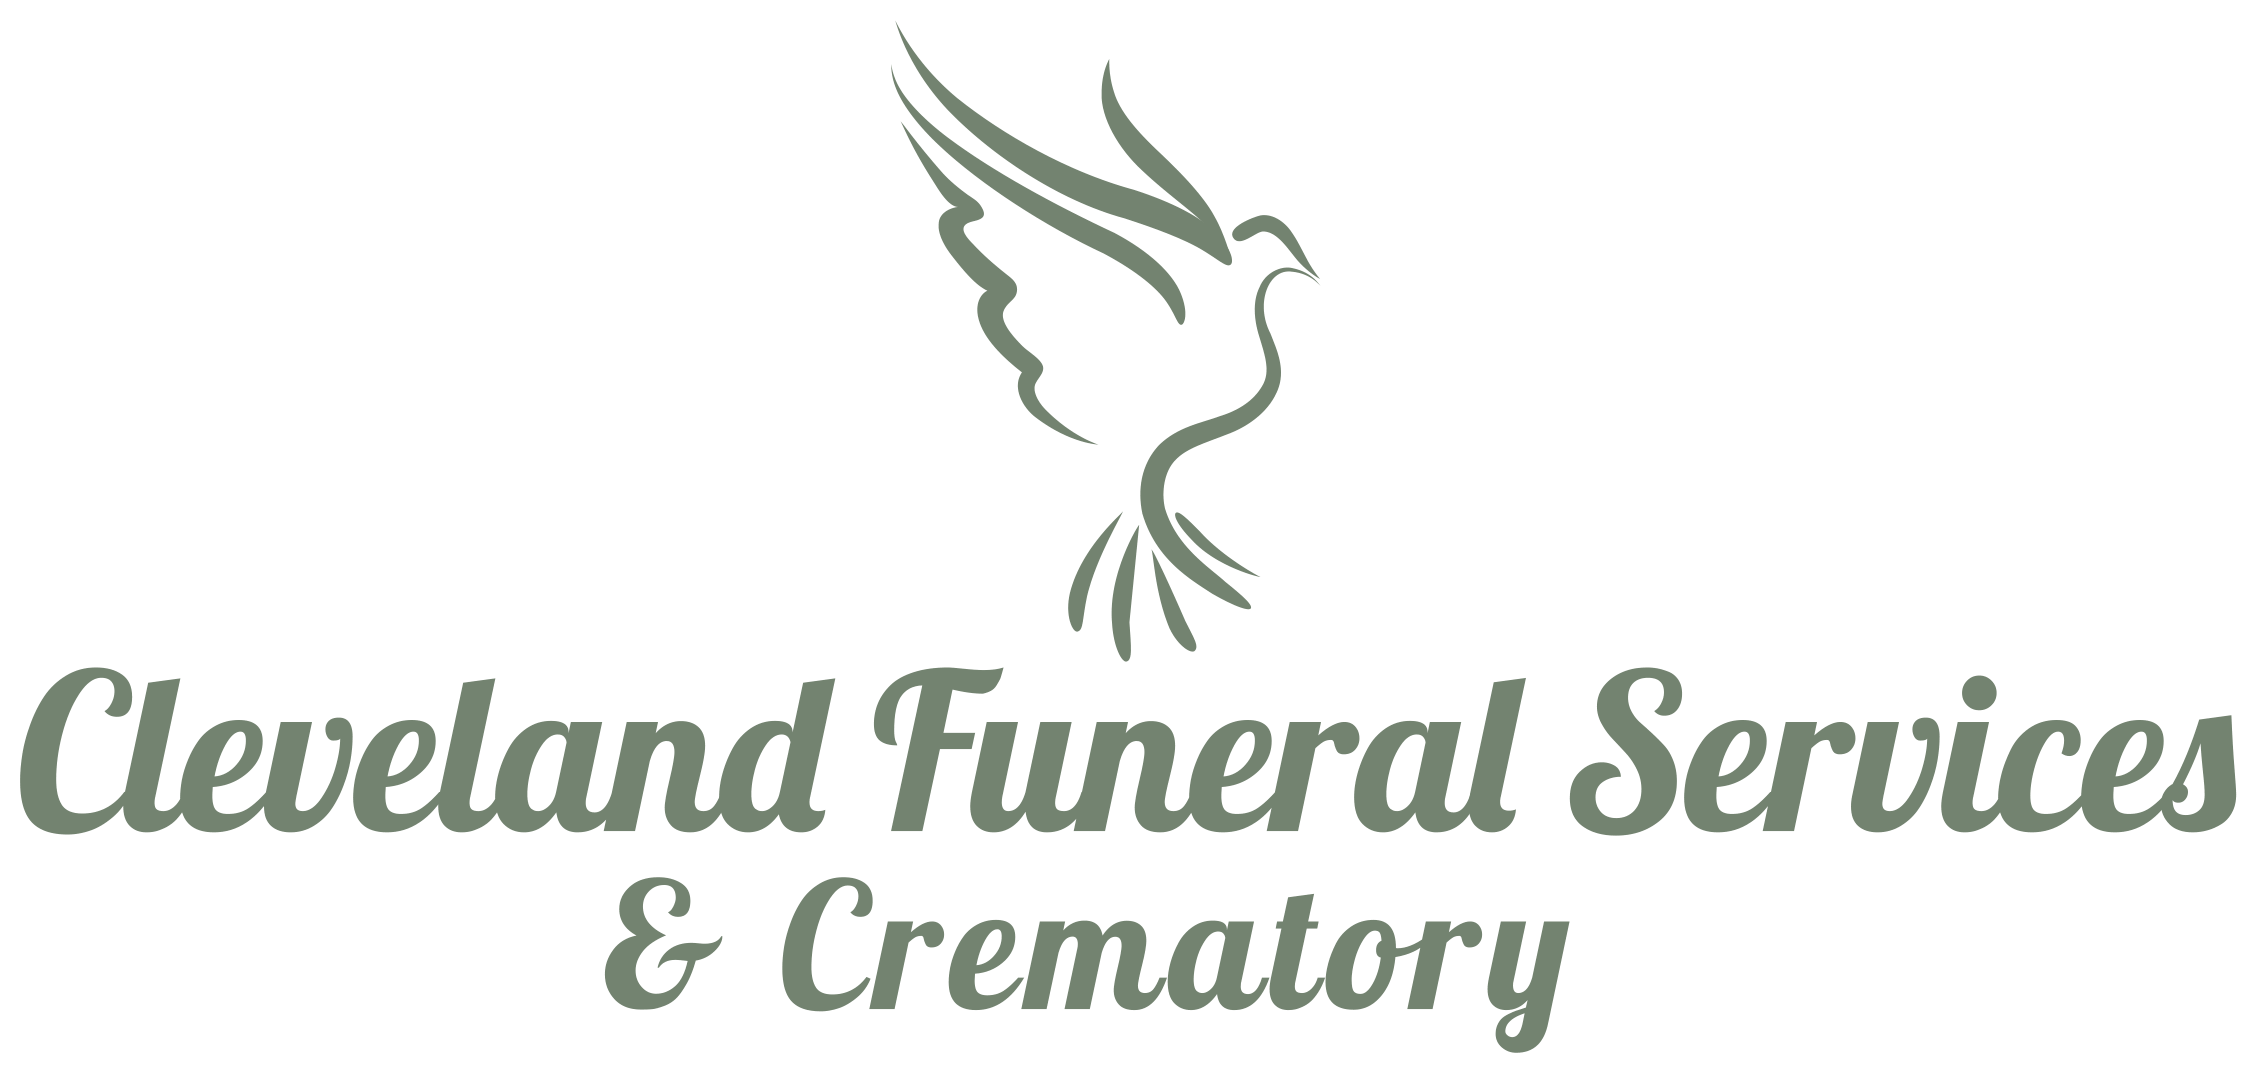 All Obituaries | Cleveland Funeral Services & Crematory